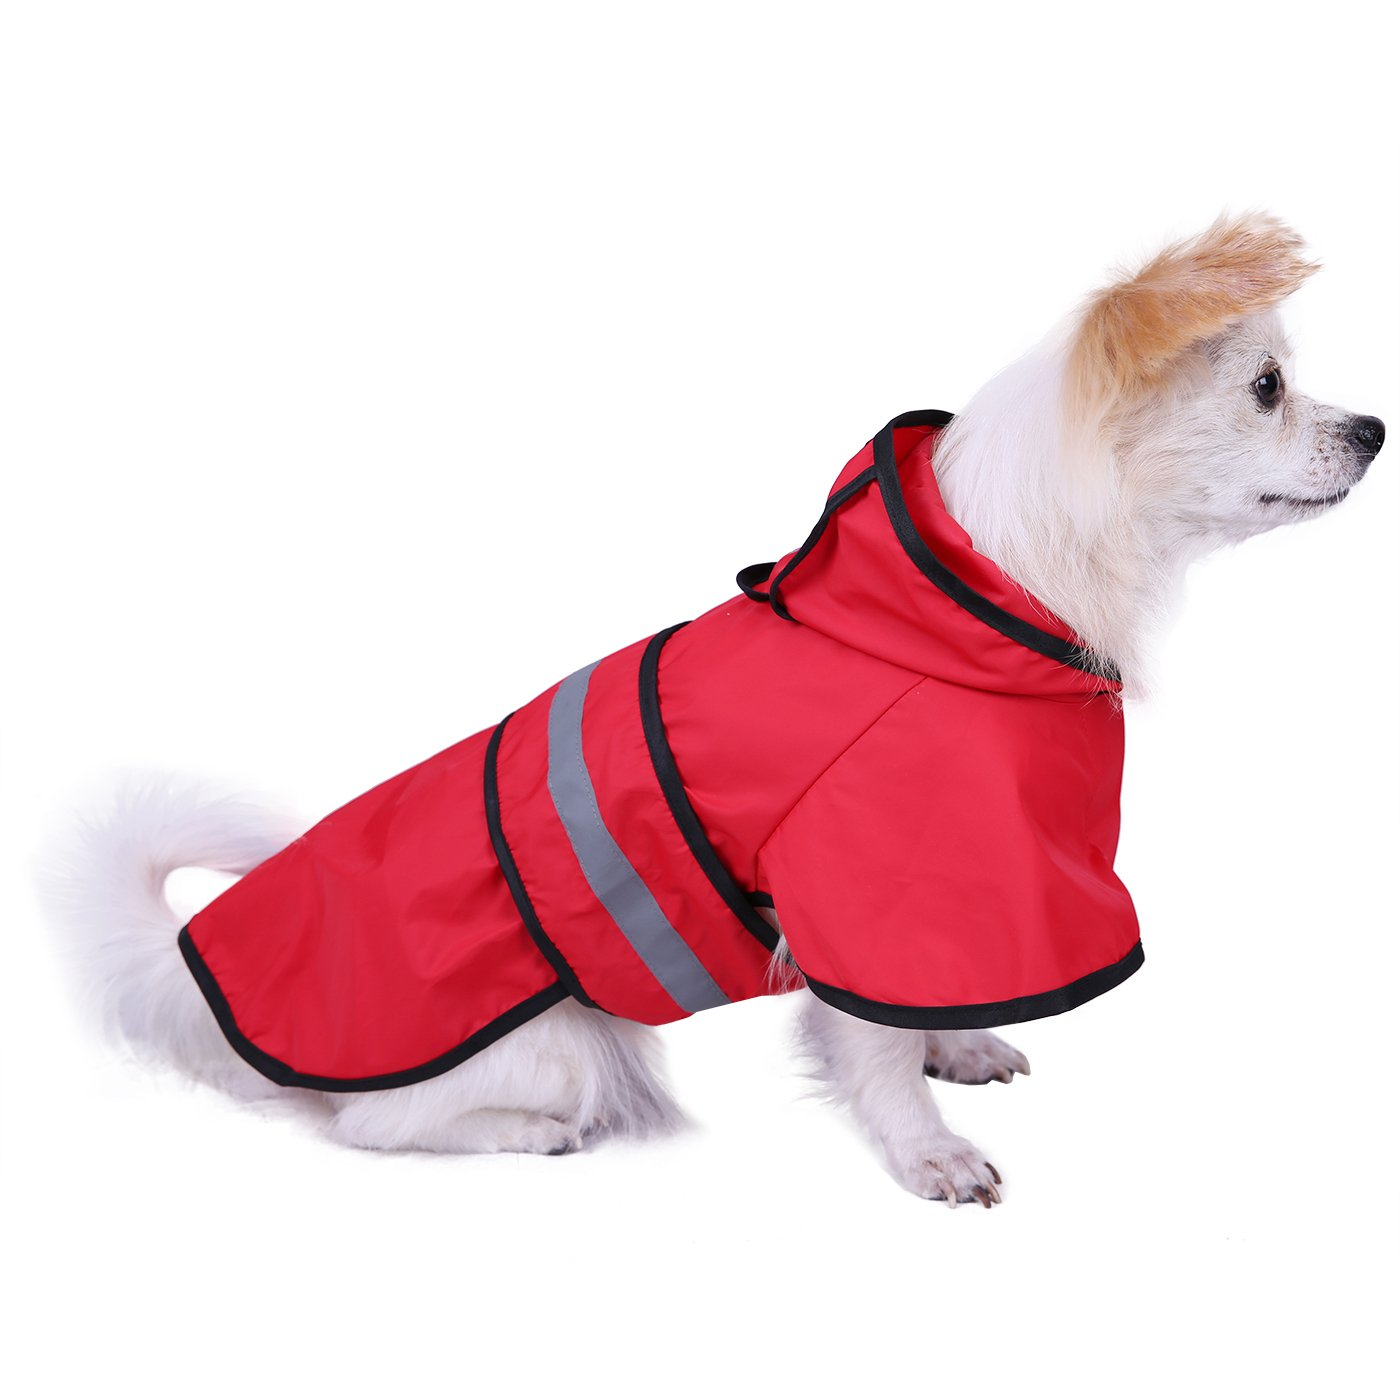 HDE Dog Raincoat Hooded Slicker Poncho for Small to X-Large Dogs and Puppies (Red, Medium) by HDE (Image #1)